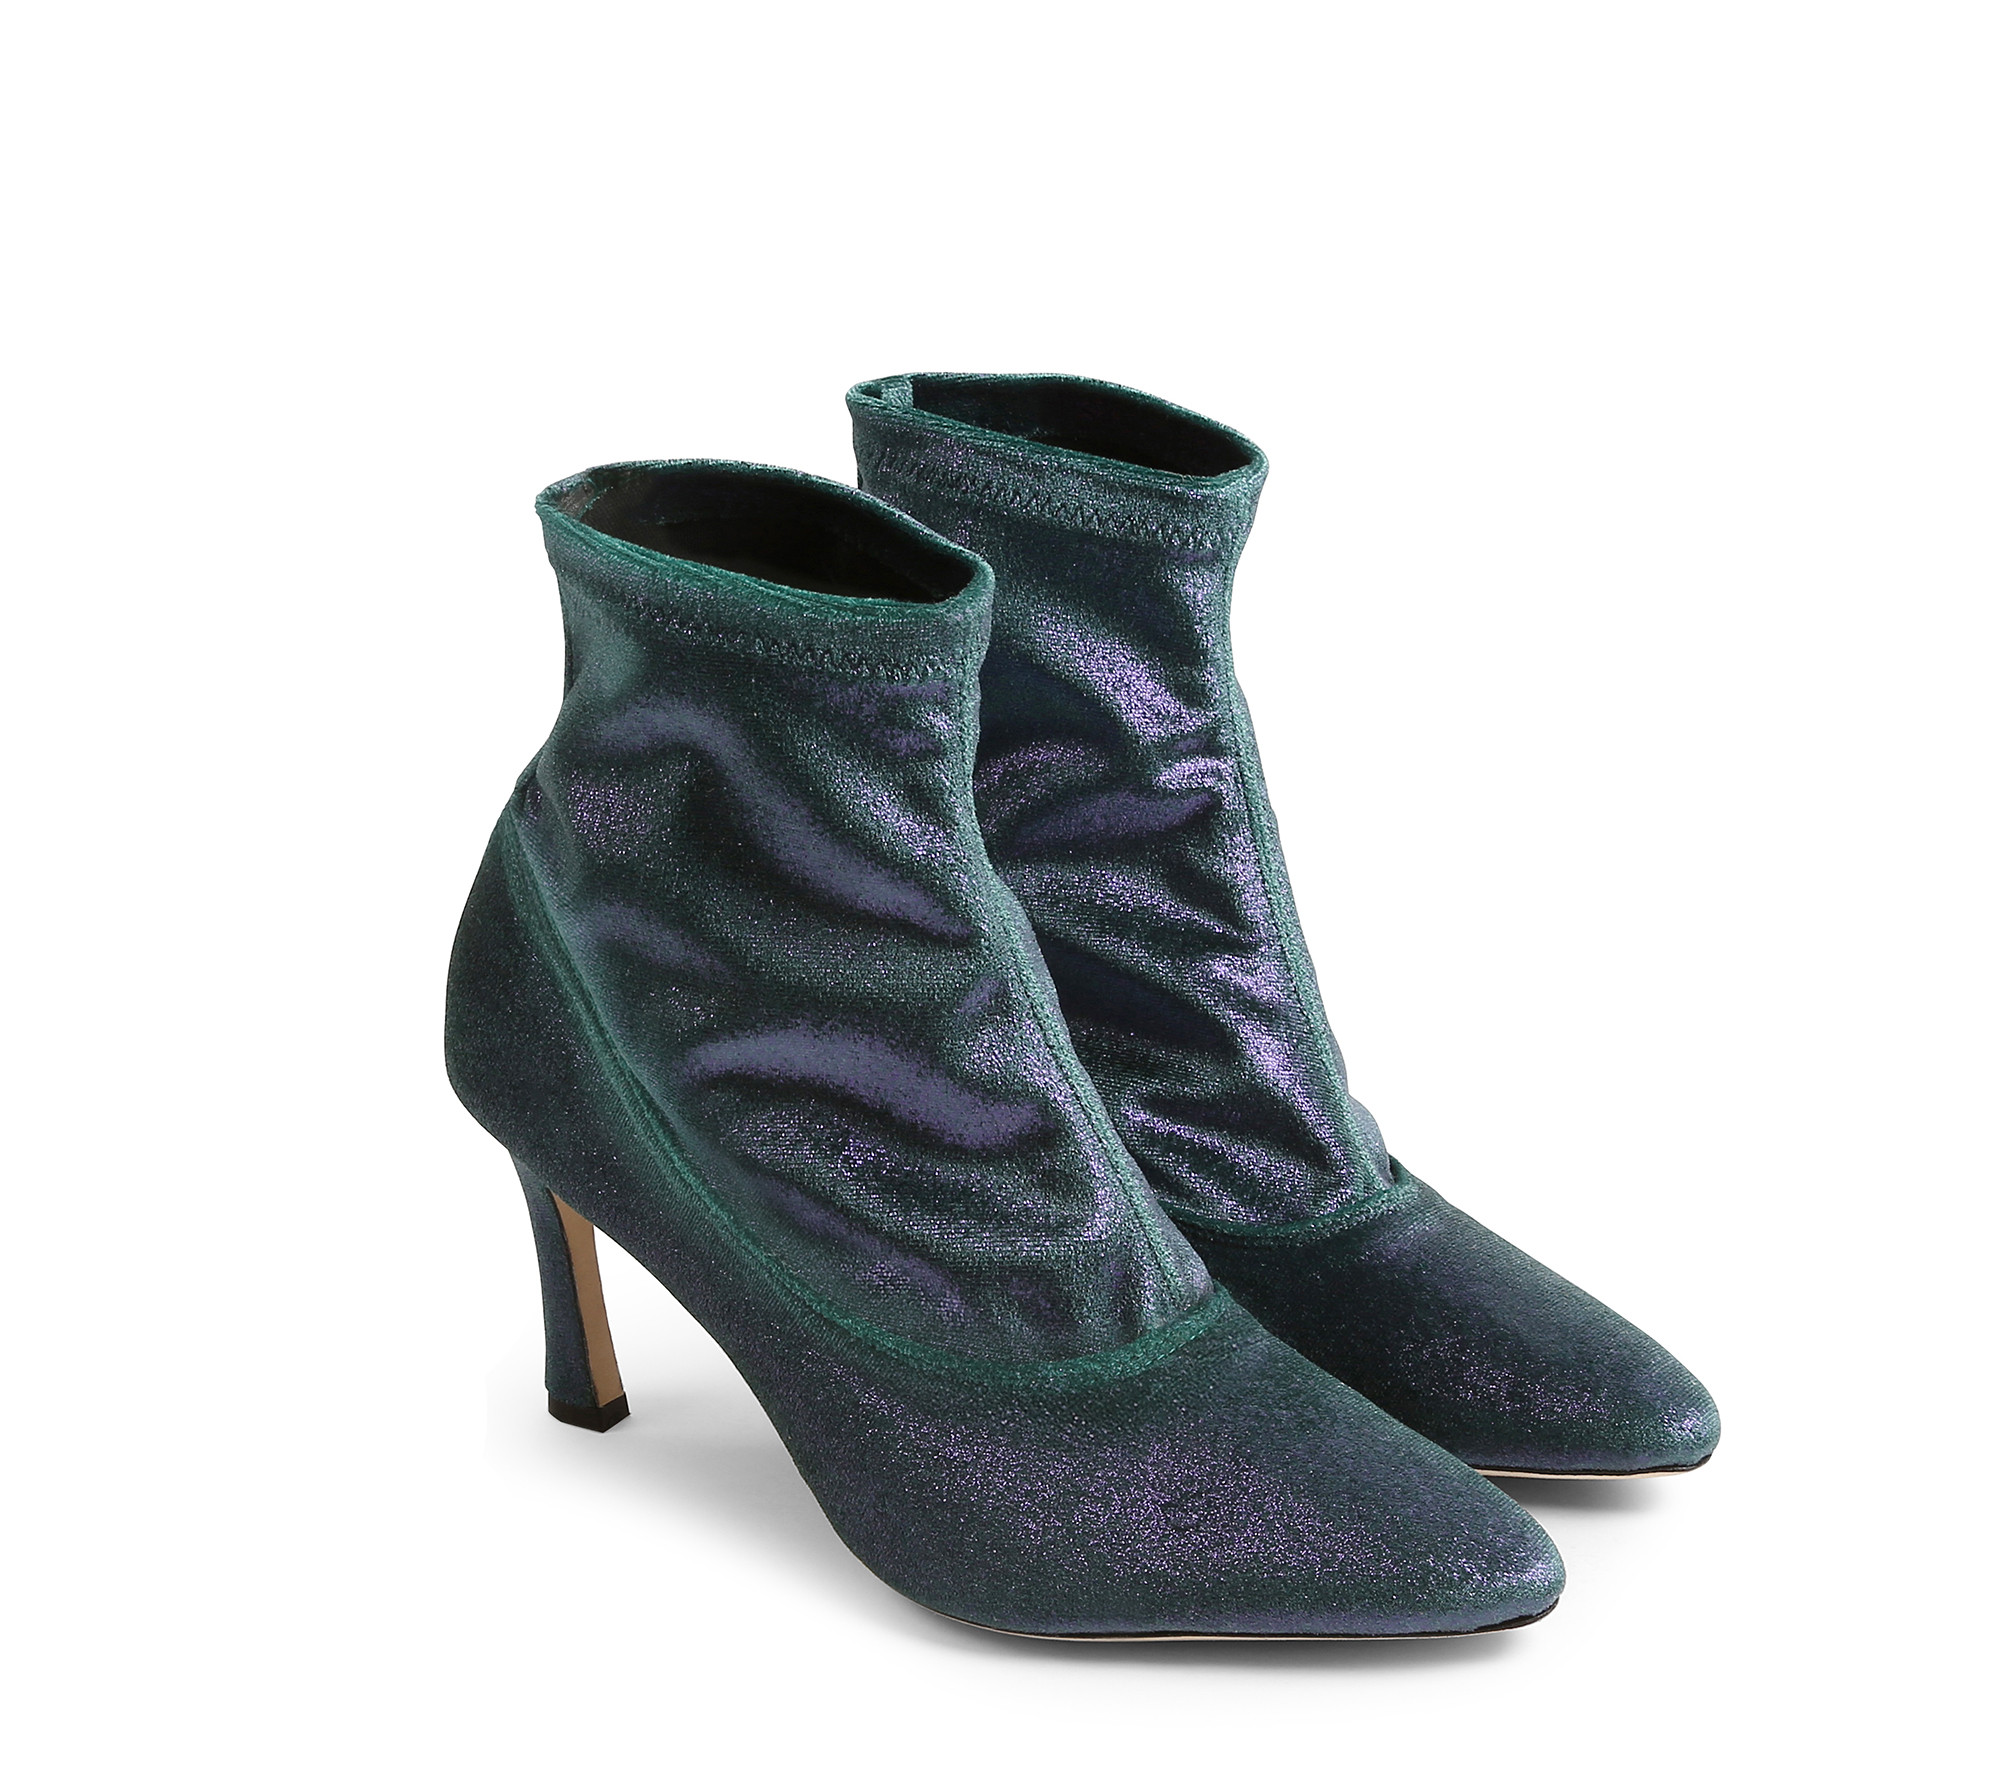 Joconde ankle boots